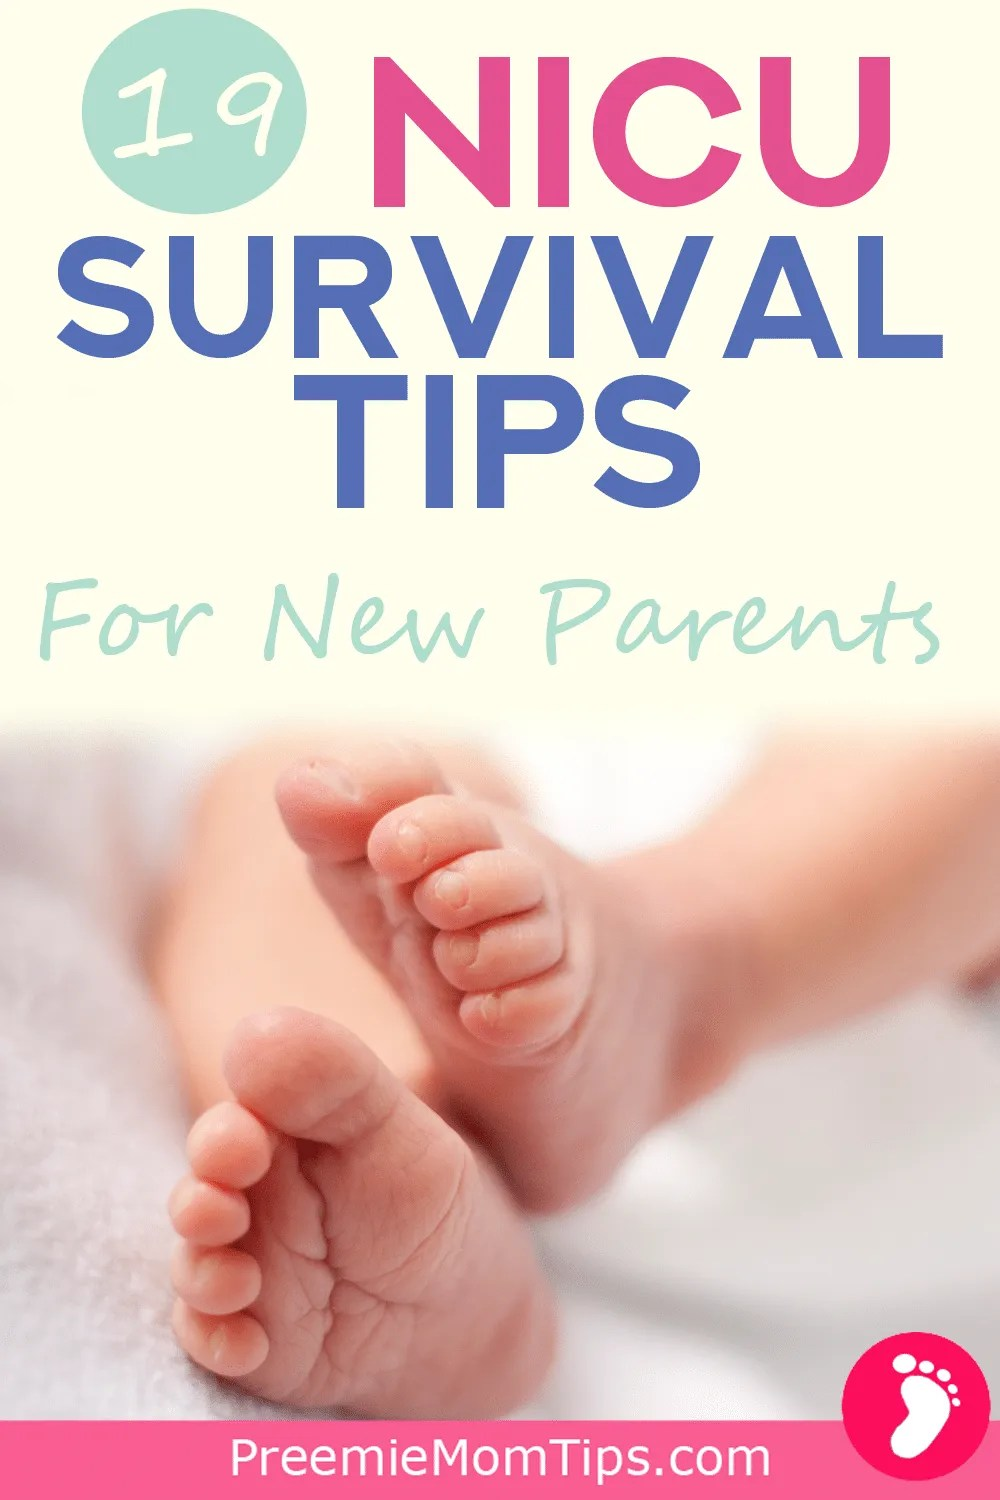 NICU hacks, tips, and tricks for new moms and dads taking care of their babies in the NICU!